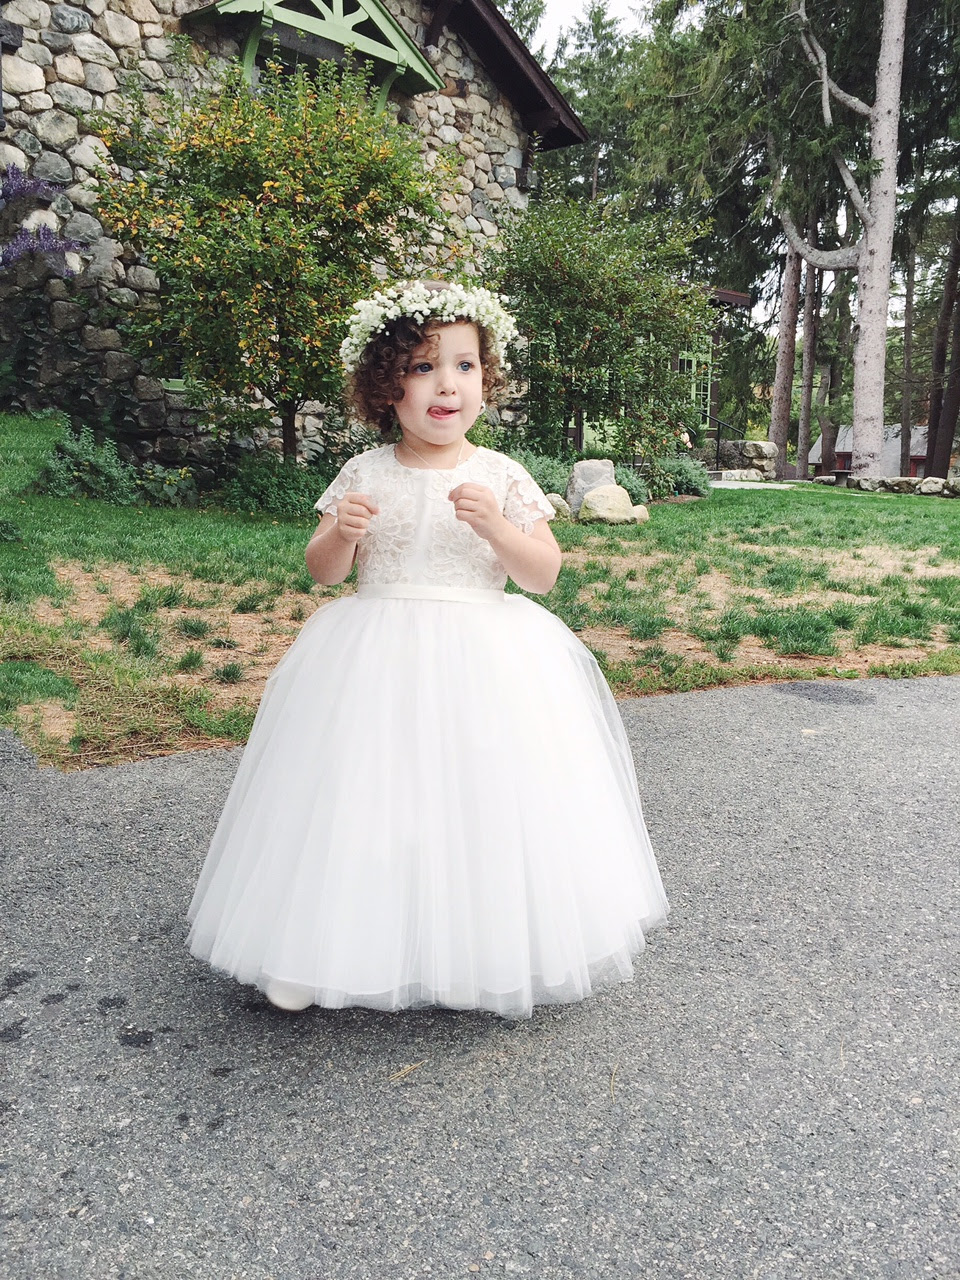 8 Of Our Favorite Custom Girls Dresses From Cuteheads The Cuteness